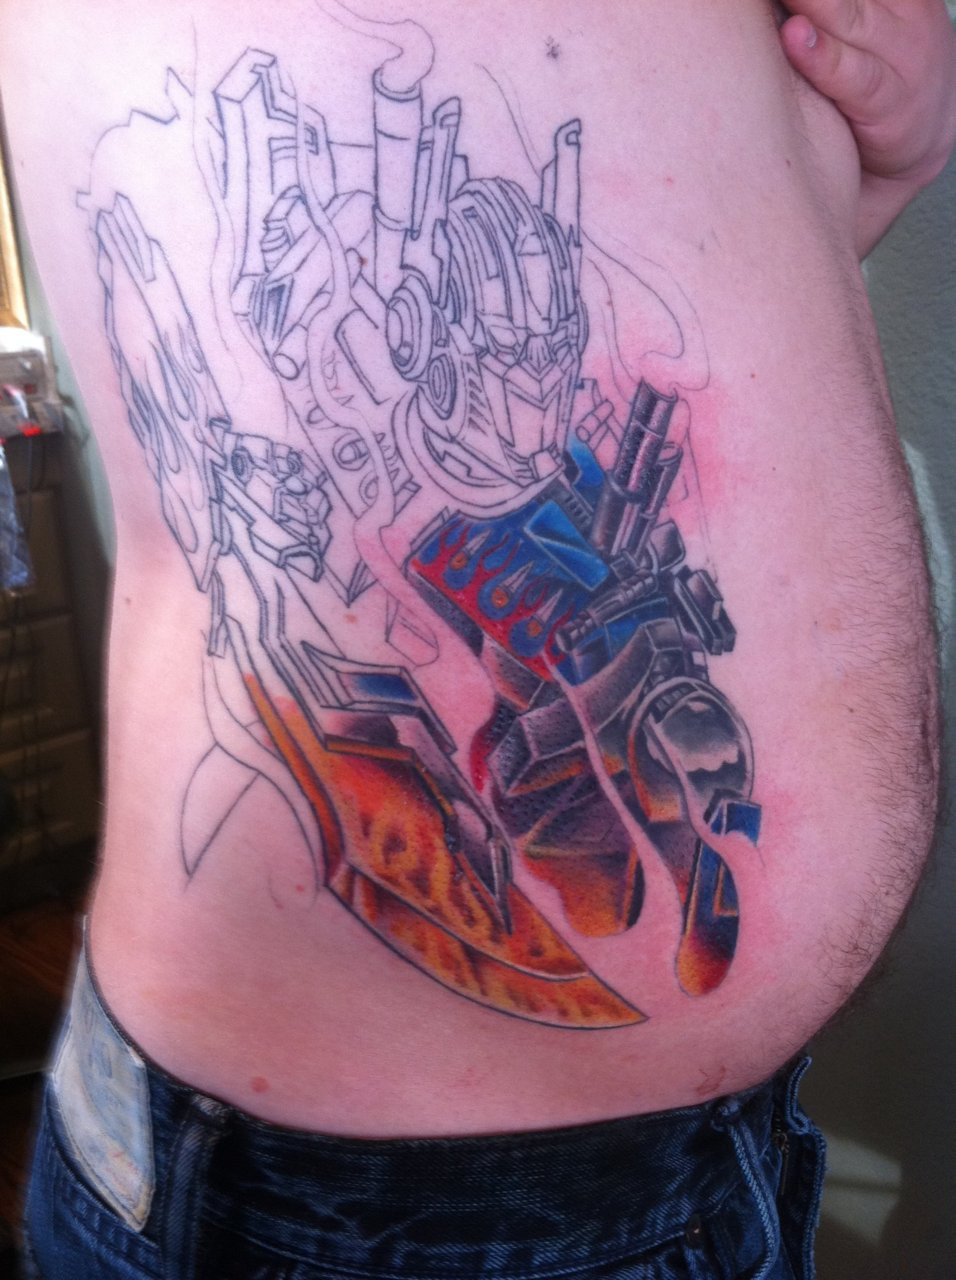 Presented without comment. #nightmarefuel #manchildren #okaymaybetwo    fuckyeahtattoos :     Partially finished Optimus Prime. This was a tattoo I debated over for close to two years. I'm a huge Transformers fan and have been since I was about 8. Can't wait to get it finished! I got it done by Dennis Hamilton at Frontline By The Sea in Cardiff, CA. He is the man! Such thorough detail. This tattoo is about 8 hours in.